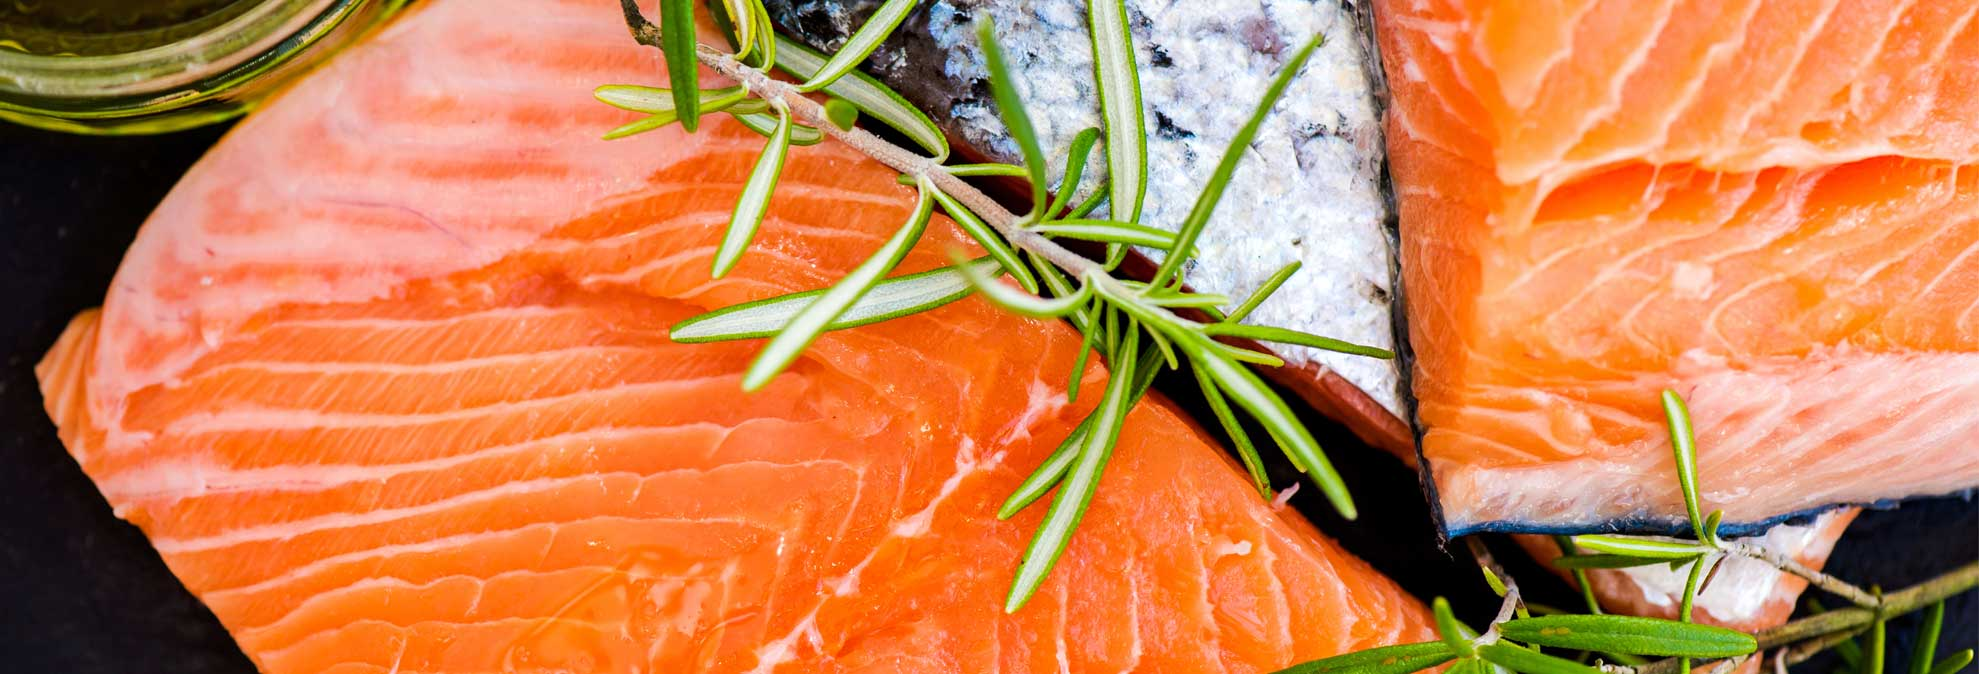 How To Choose The Healthiest Fish Consumer Reports